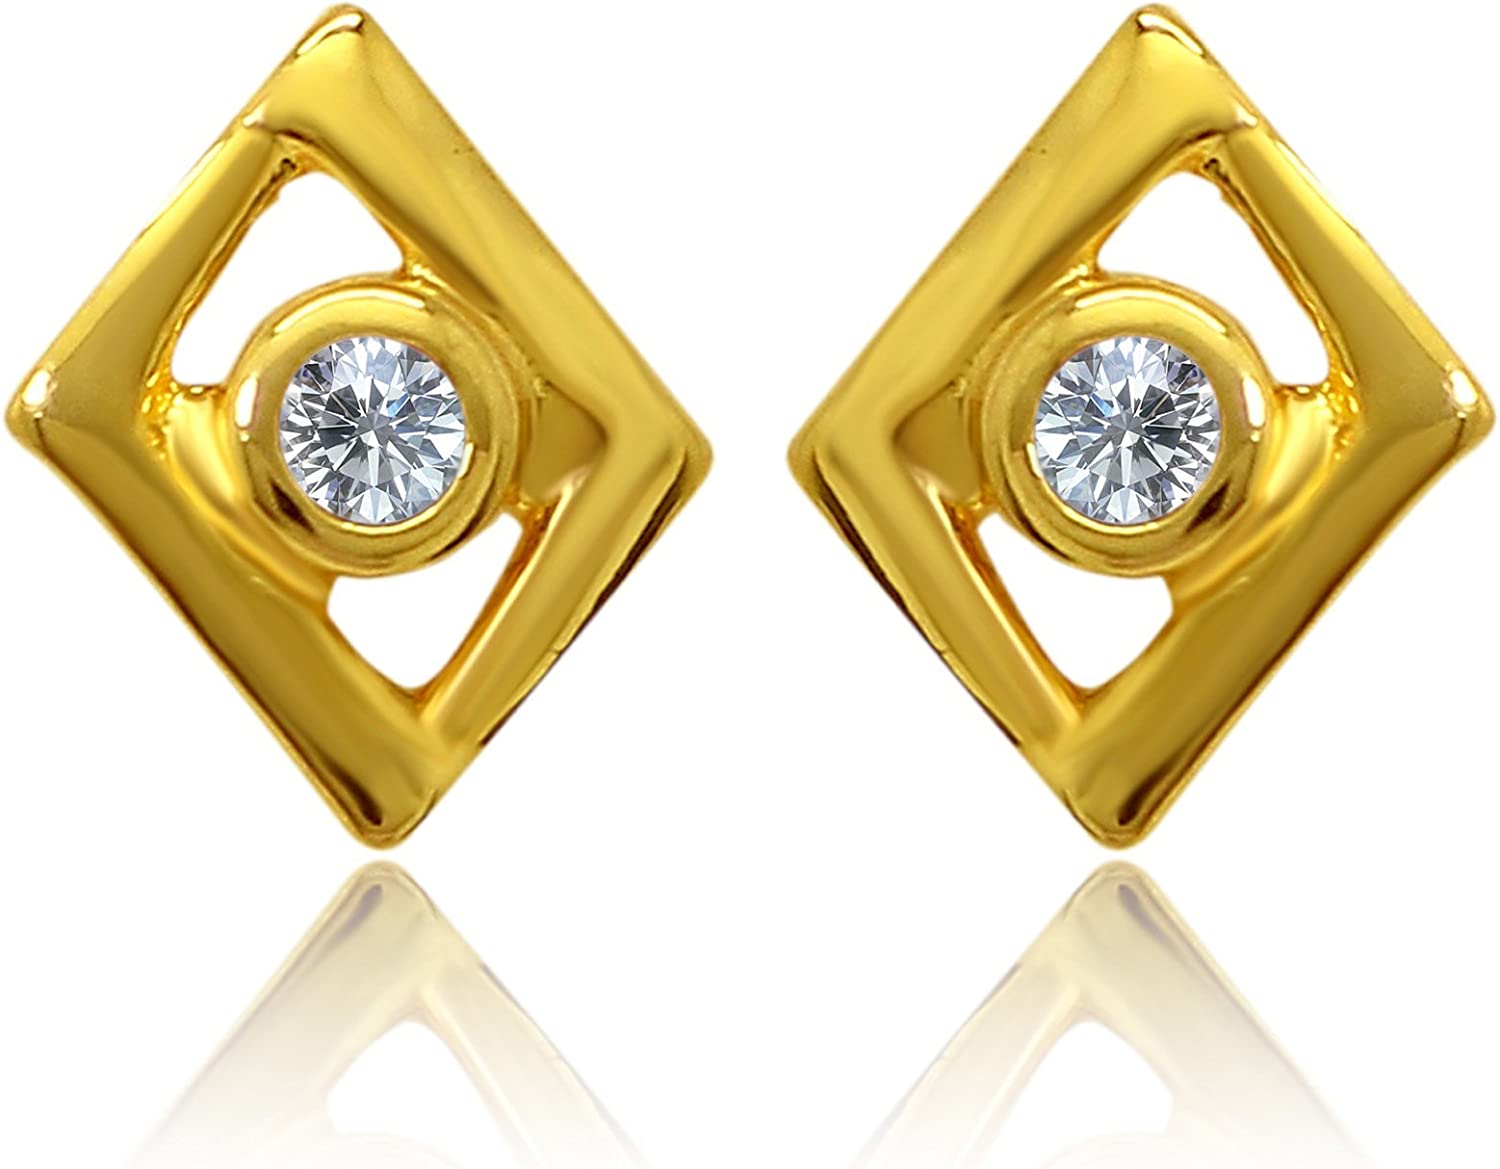 Indian Decor & Attire Exa Collection CZ White Kite Square Gold Plated Stud Earrings for Women ER6012010GWhi